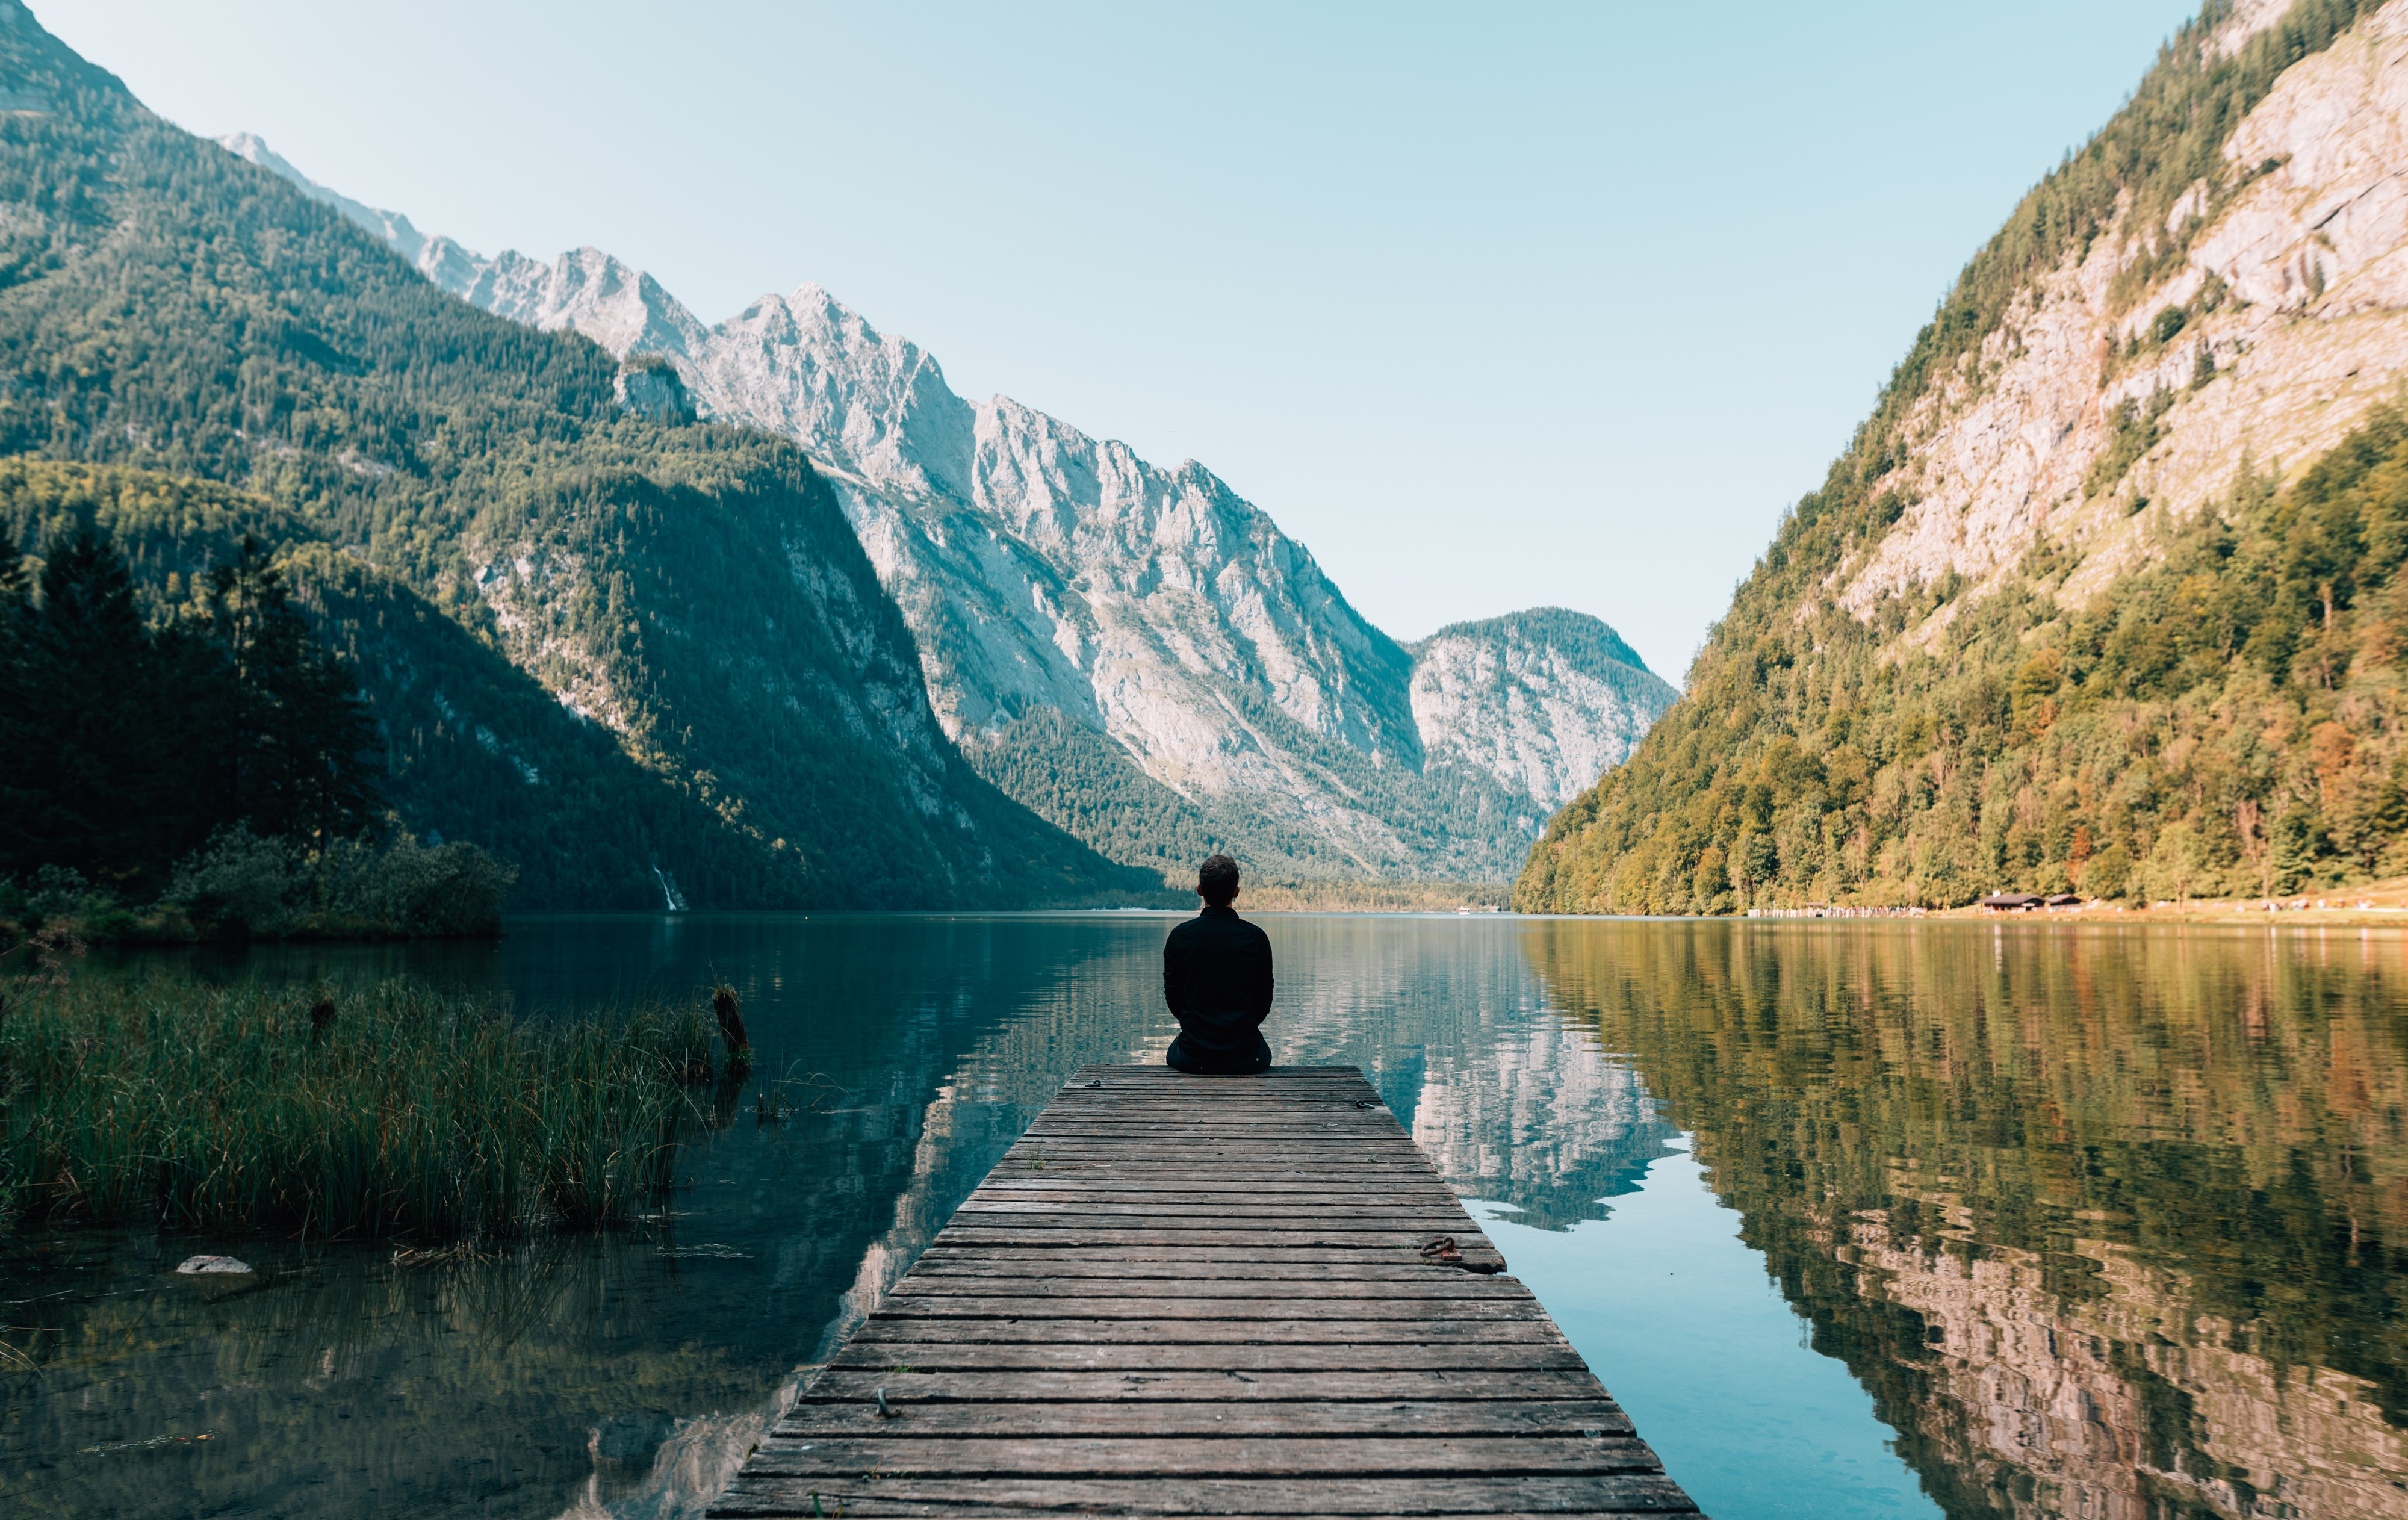 benefits of being outside include reducing stress